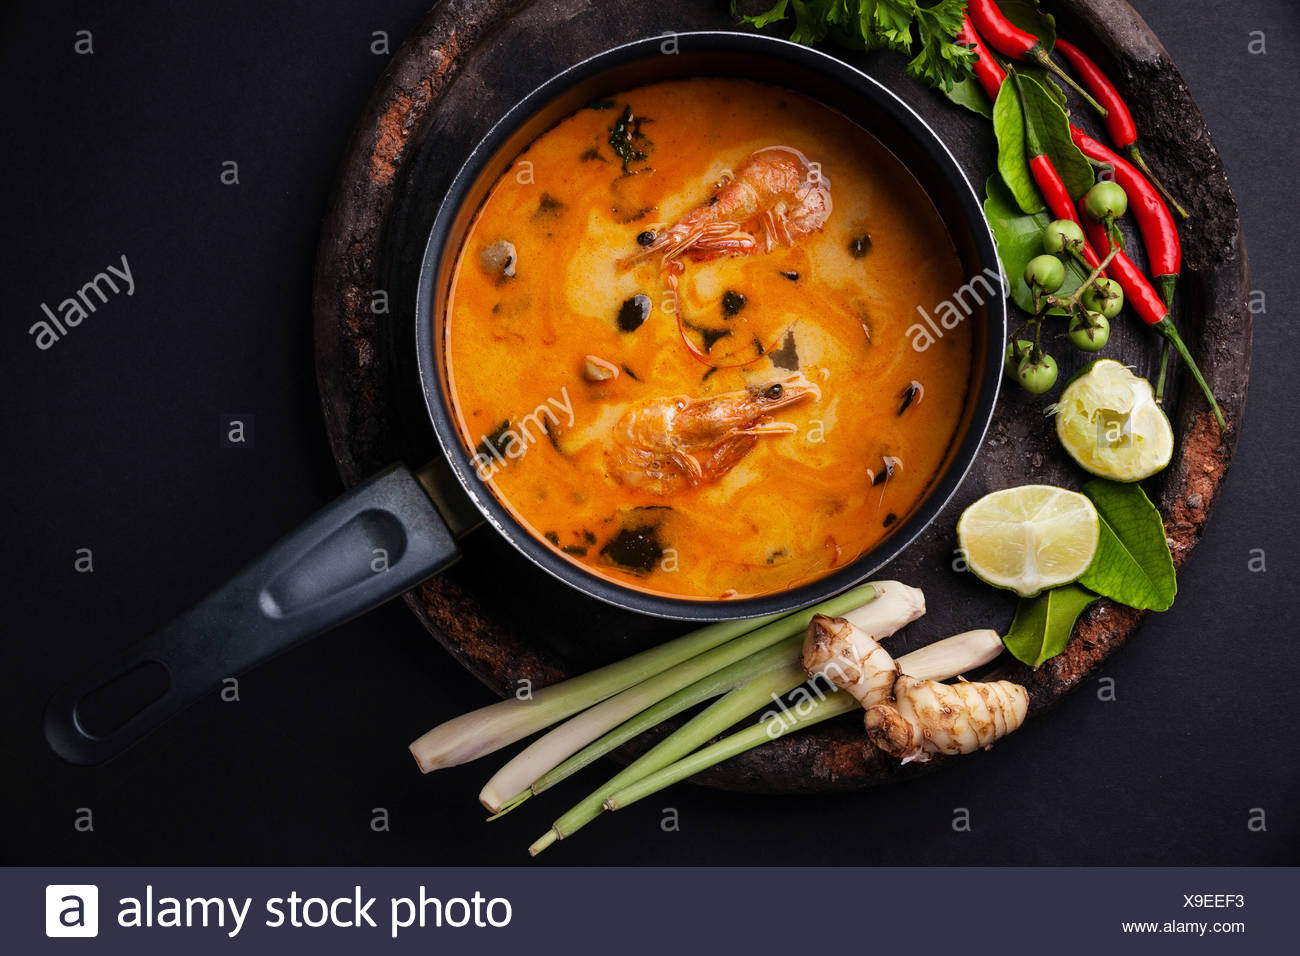 Spicy Thai soup Tom Yam with Ingredients on dark background - Stock Image